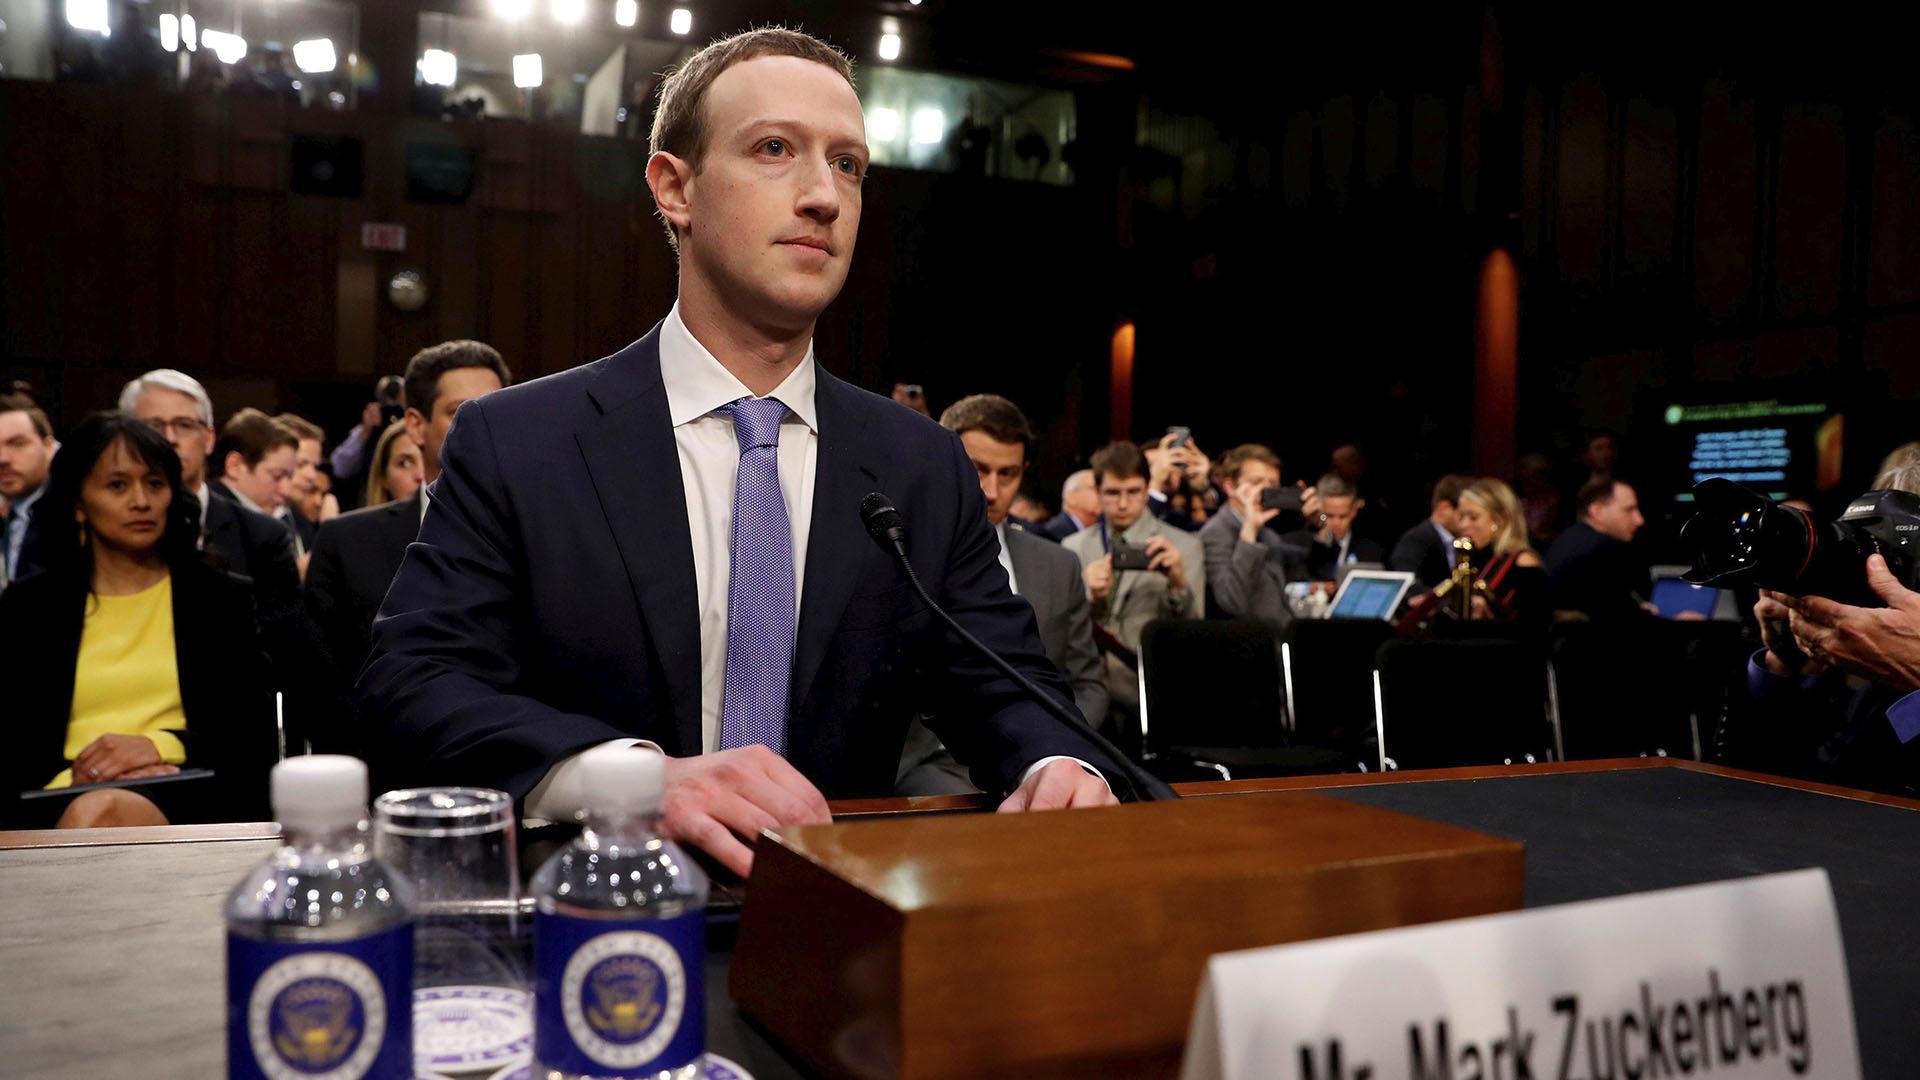 Mark Zuckerberg, interrogado en el Congreso de Estados Unidos en abril de 2018 (Reuters)